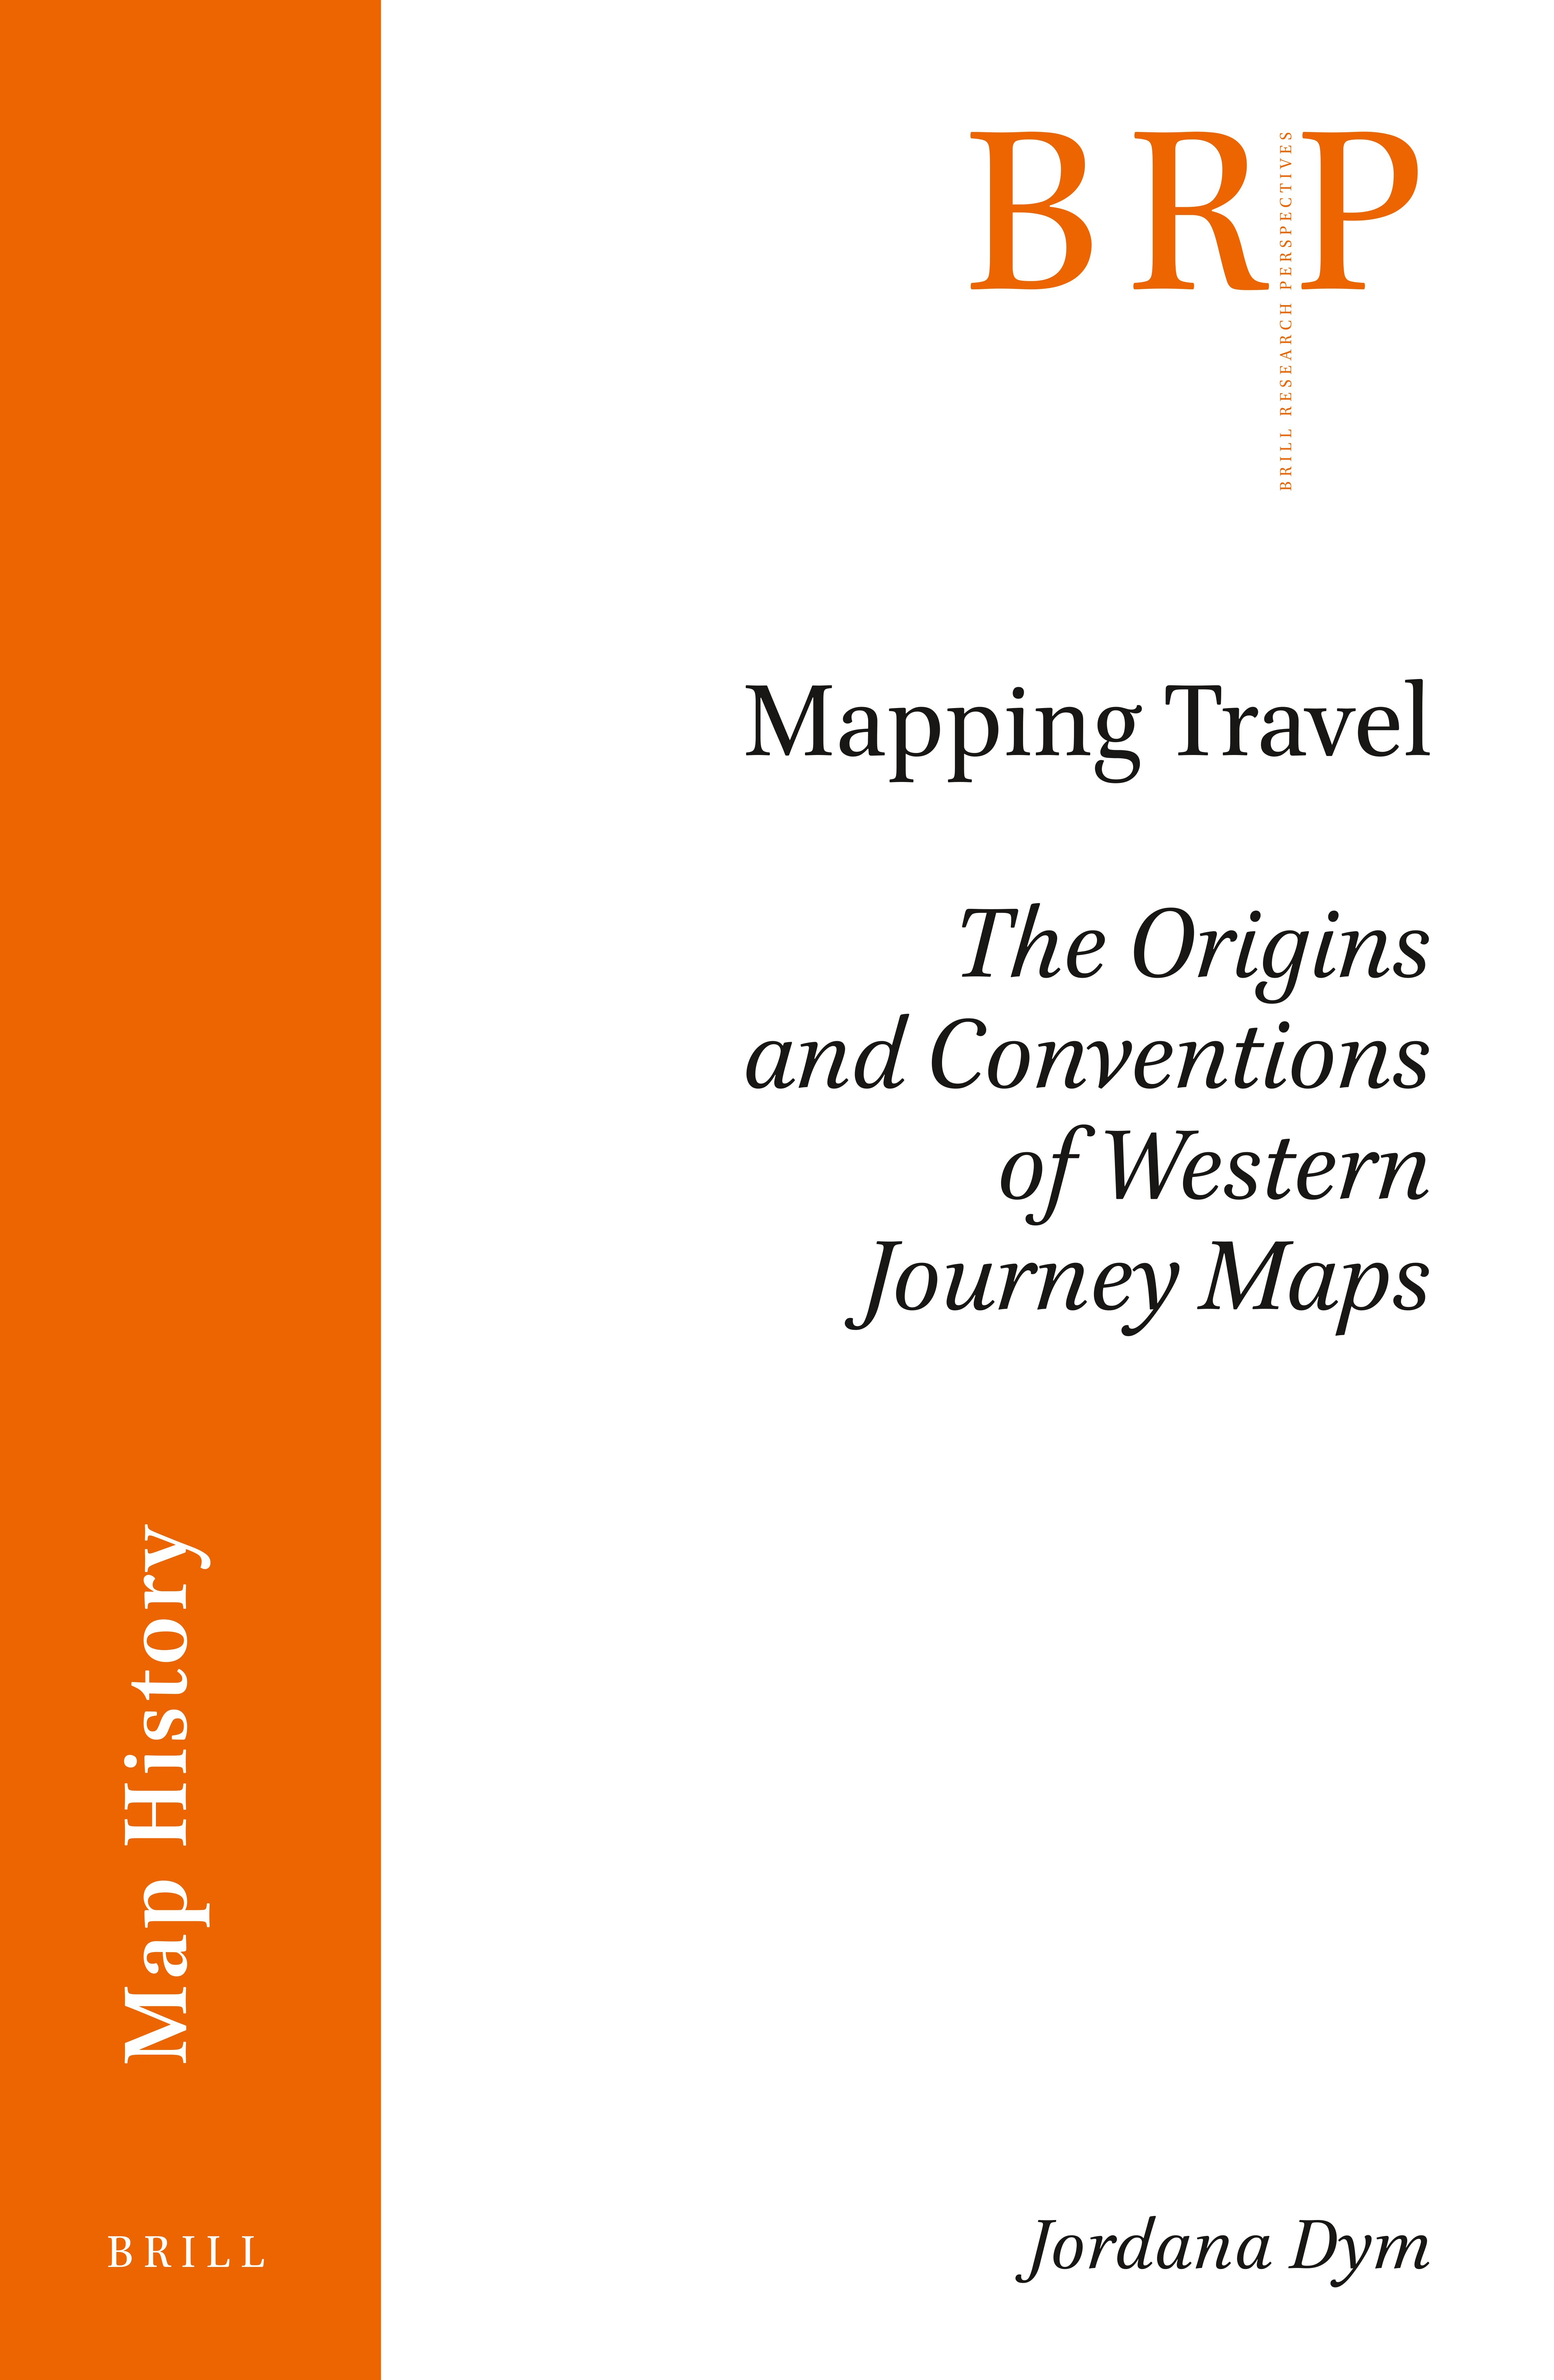 Mapping Travel in Mapping Travel